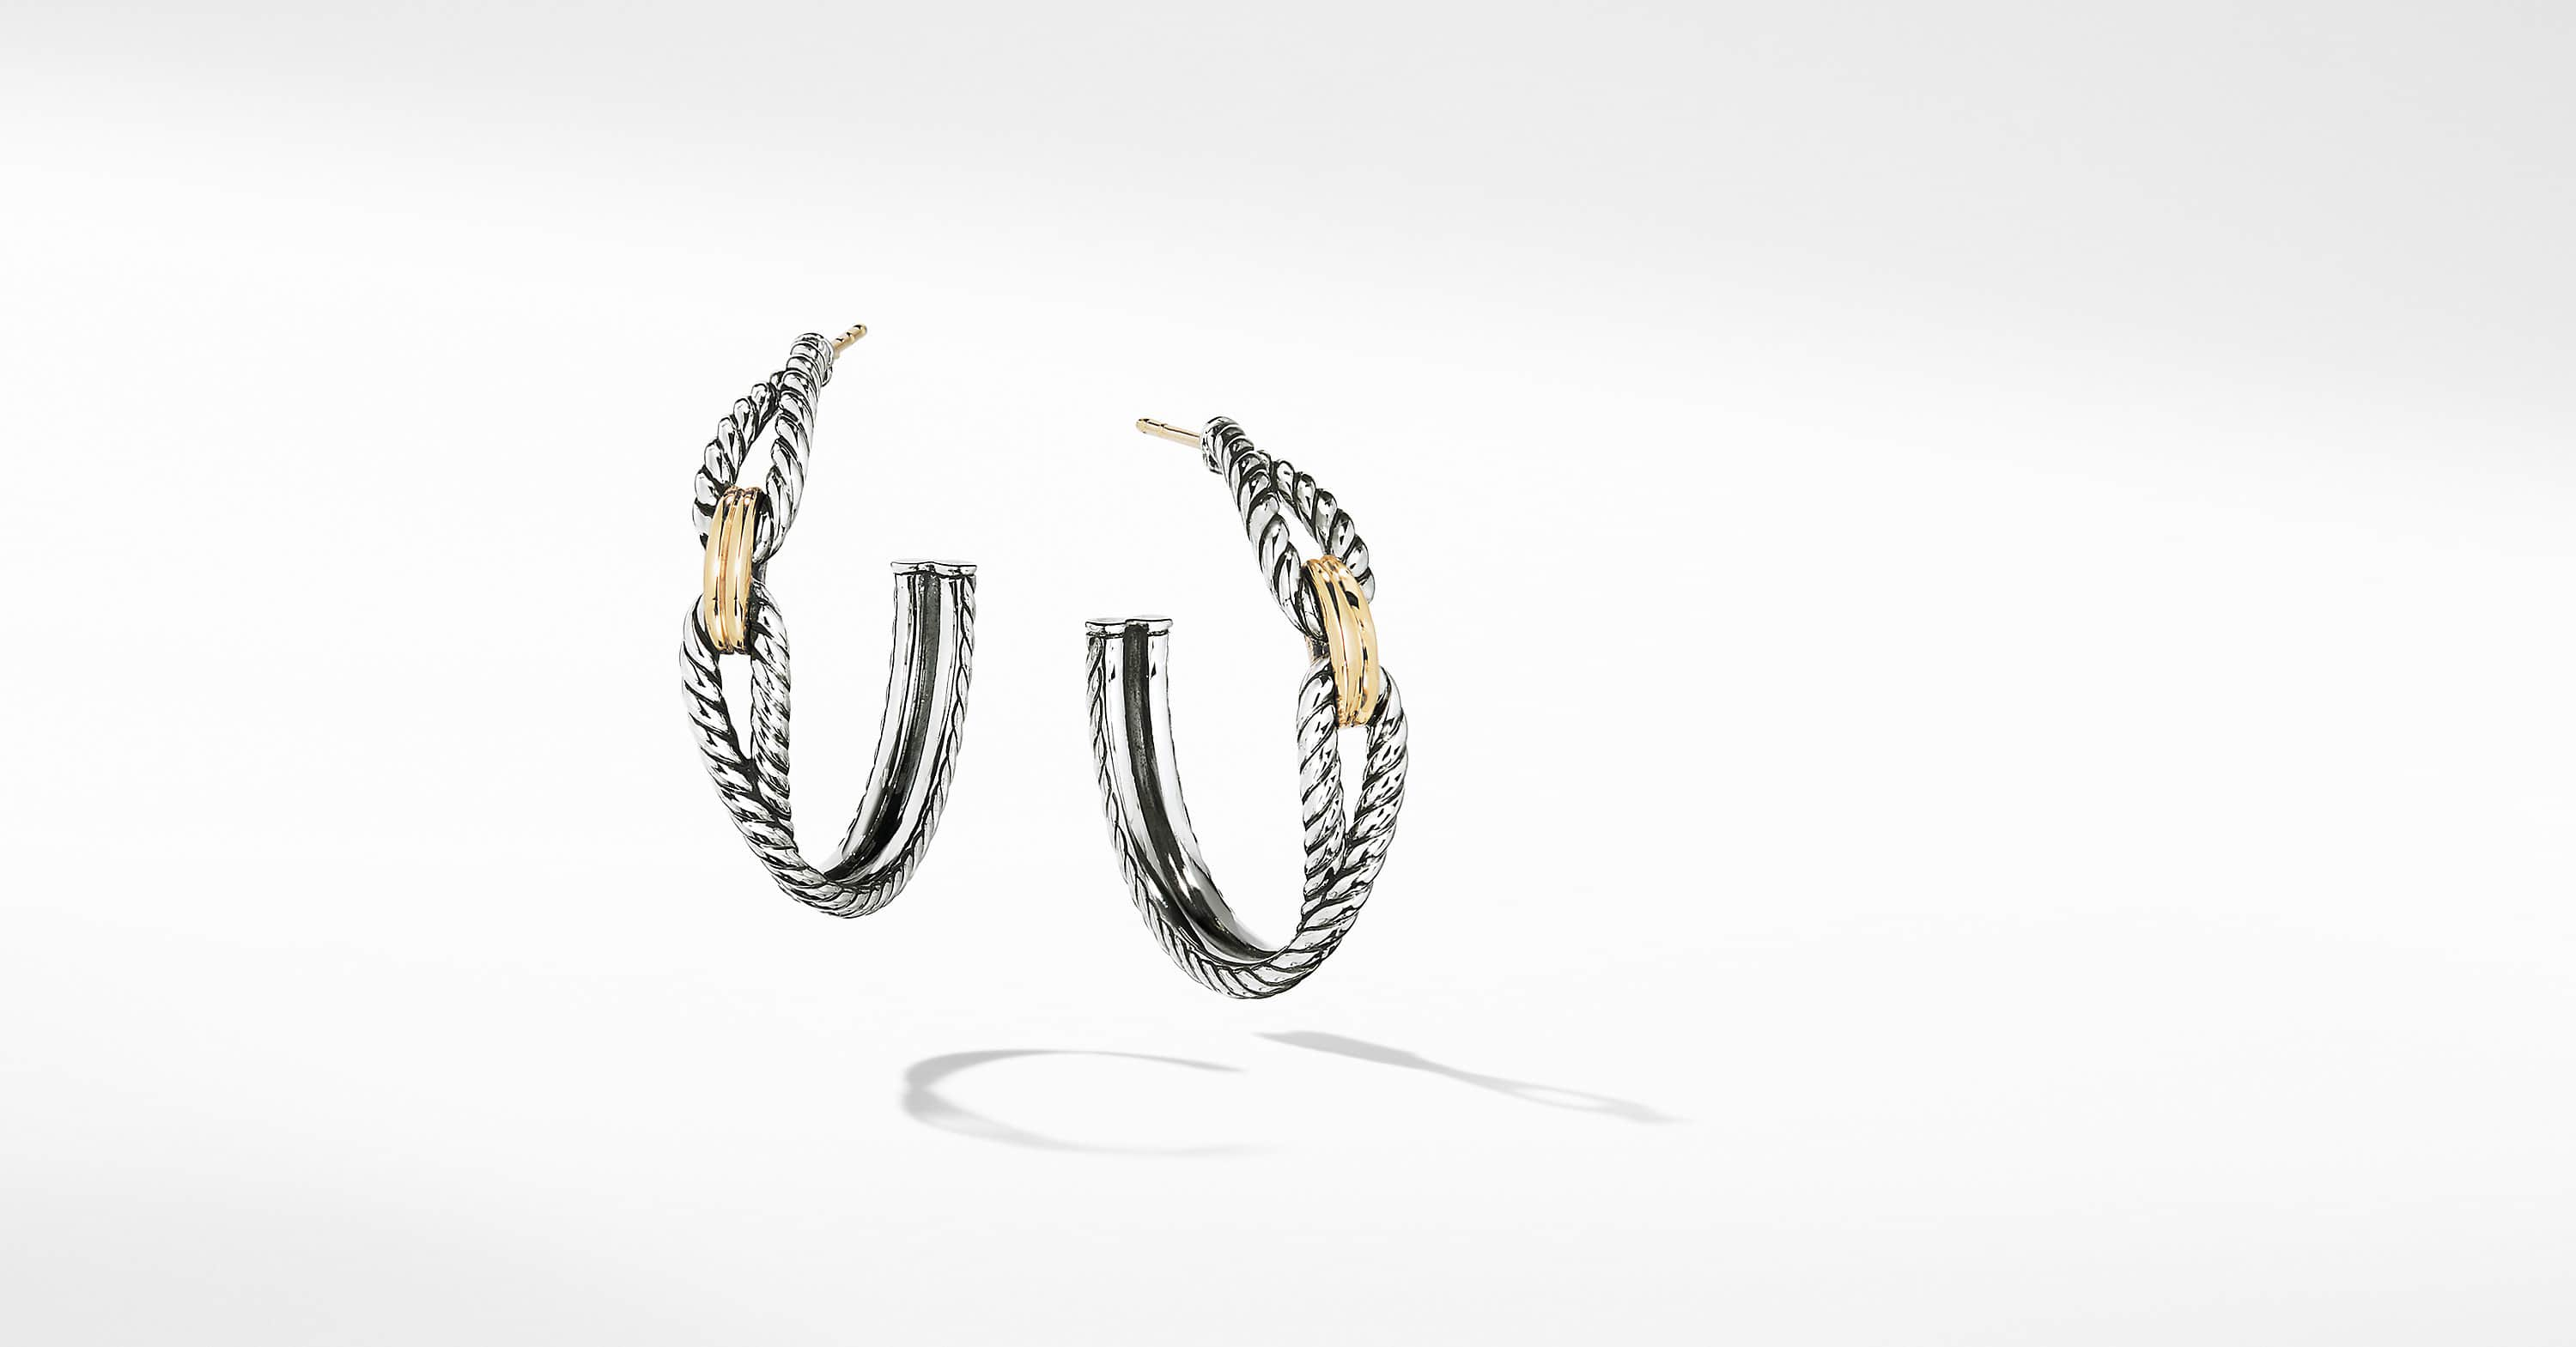 a5a2b214a Cable Loop Hoop Earrings with 18K Gold, 34.5mm | David Yurman